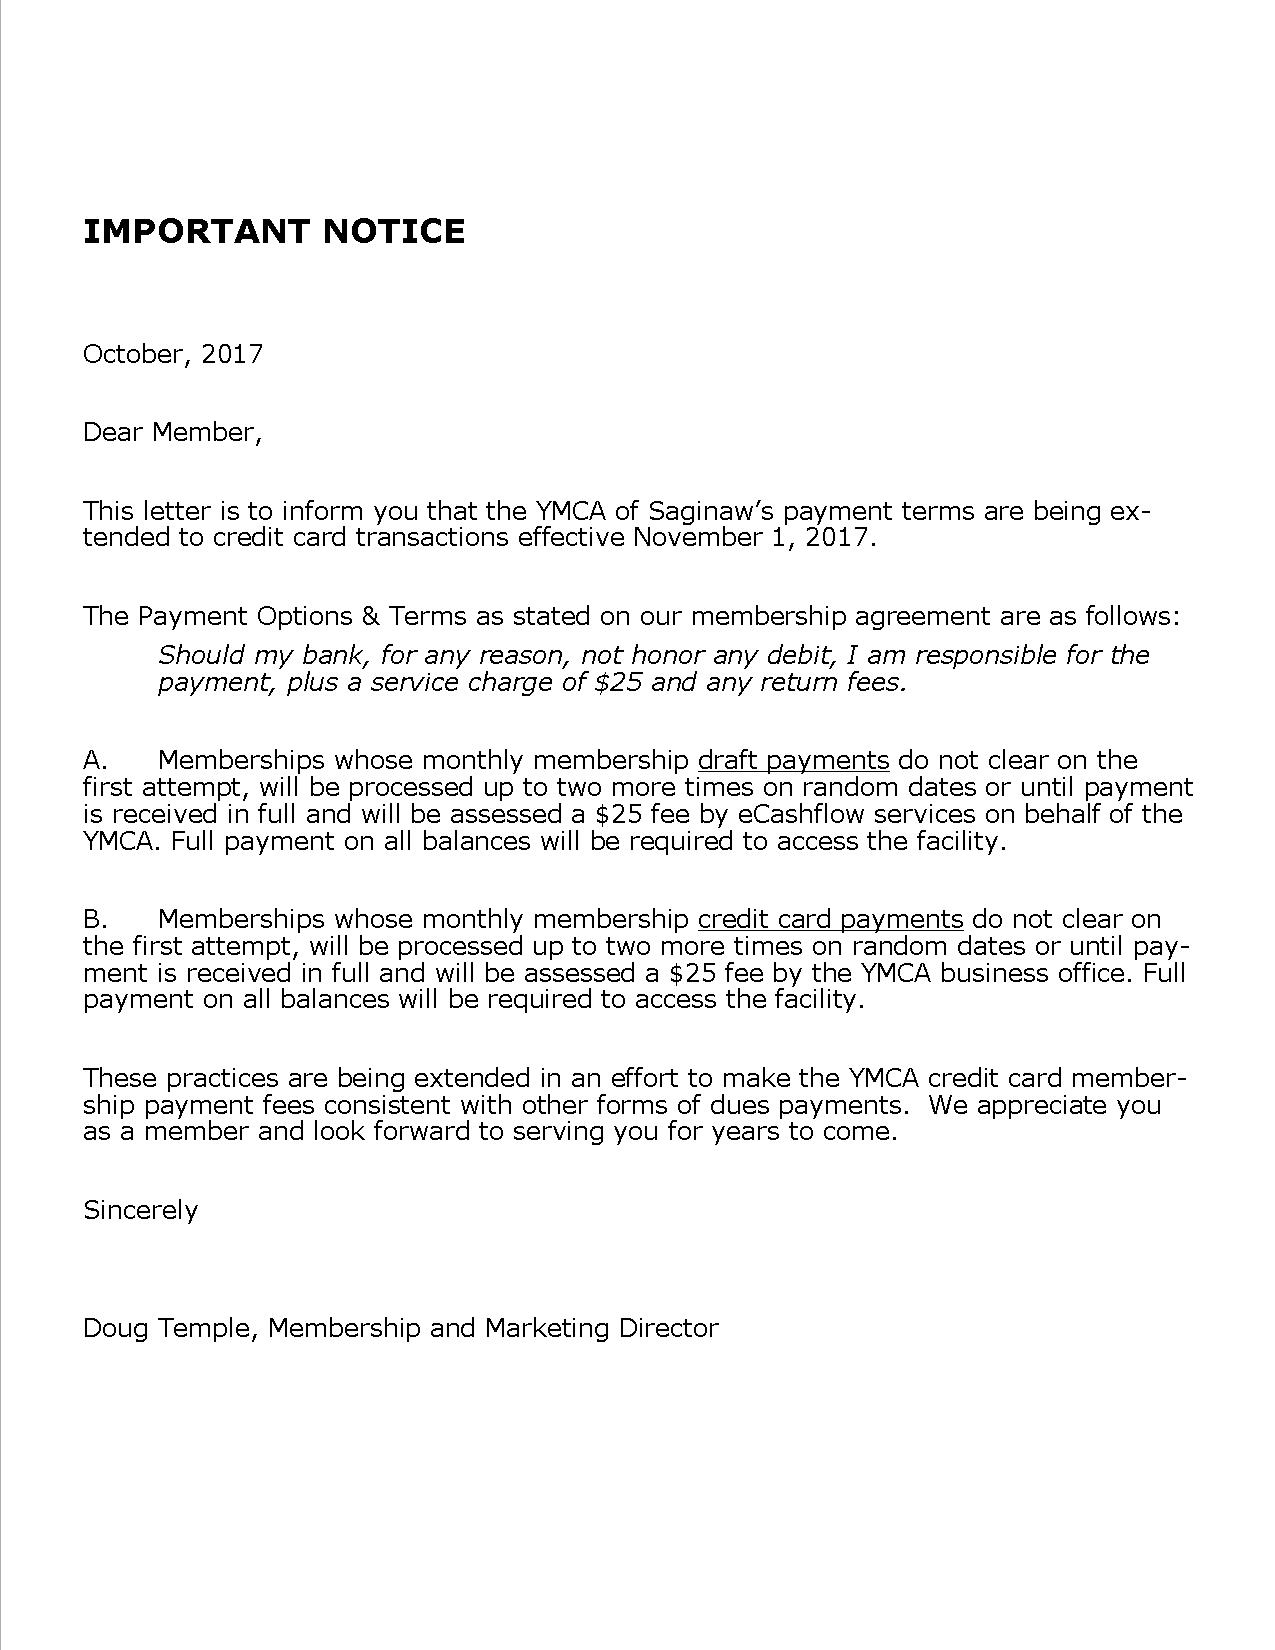 pay agreement letter